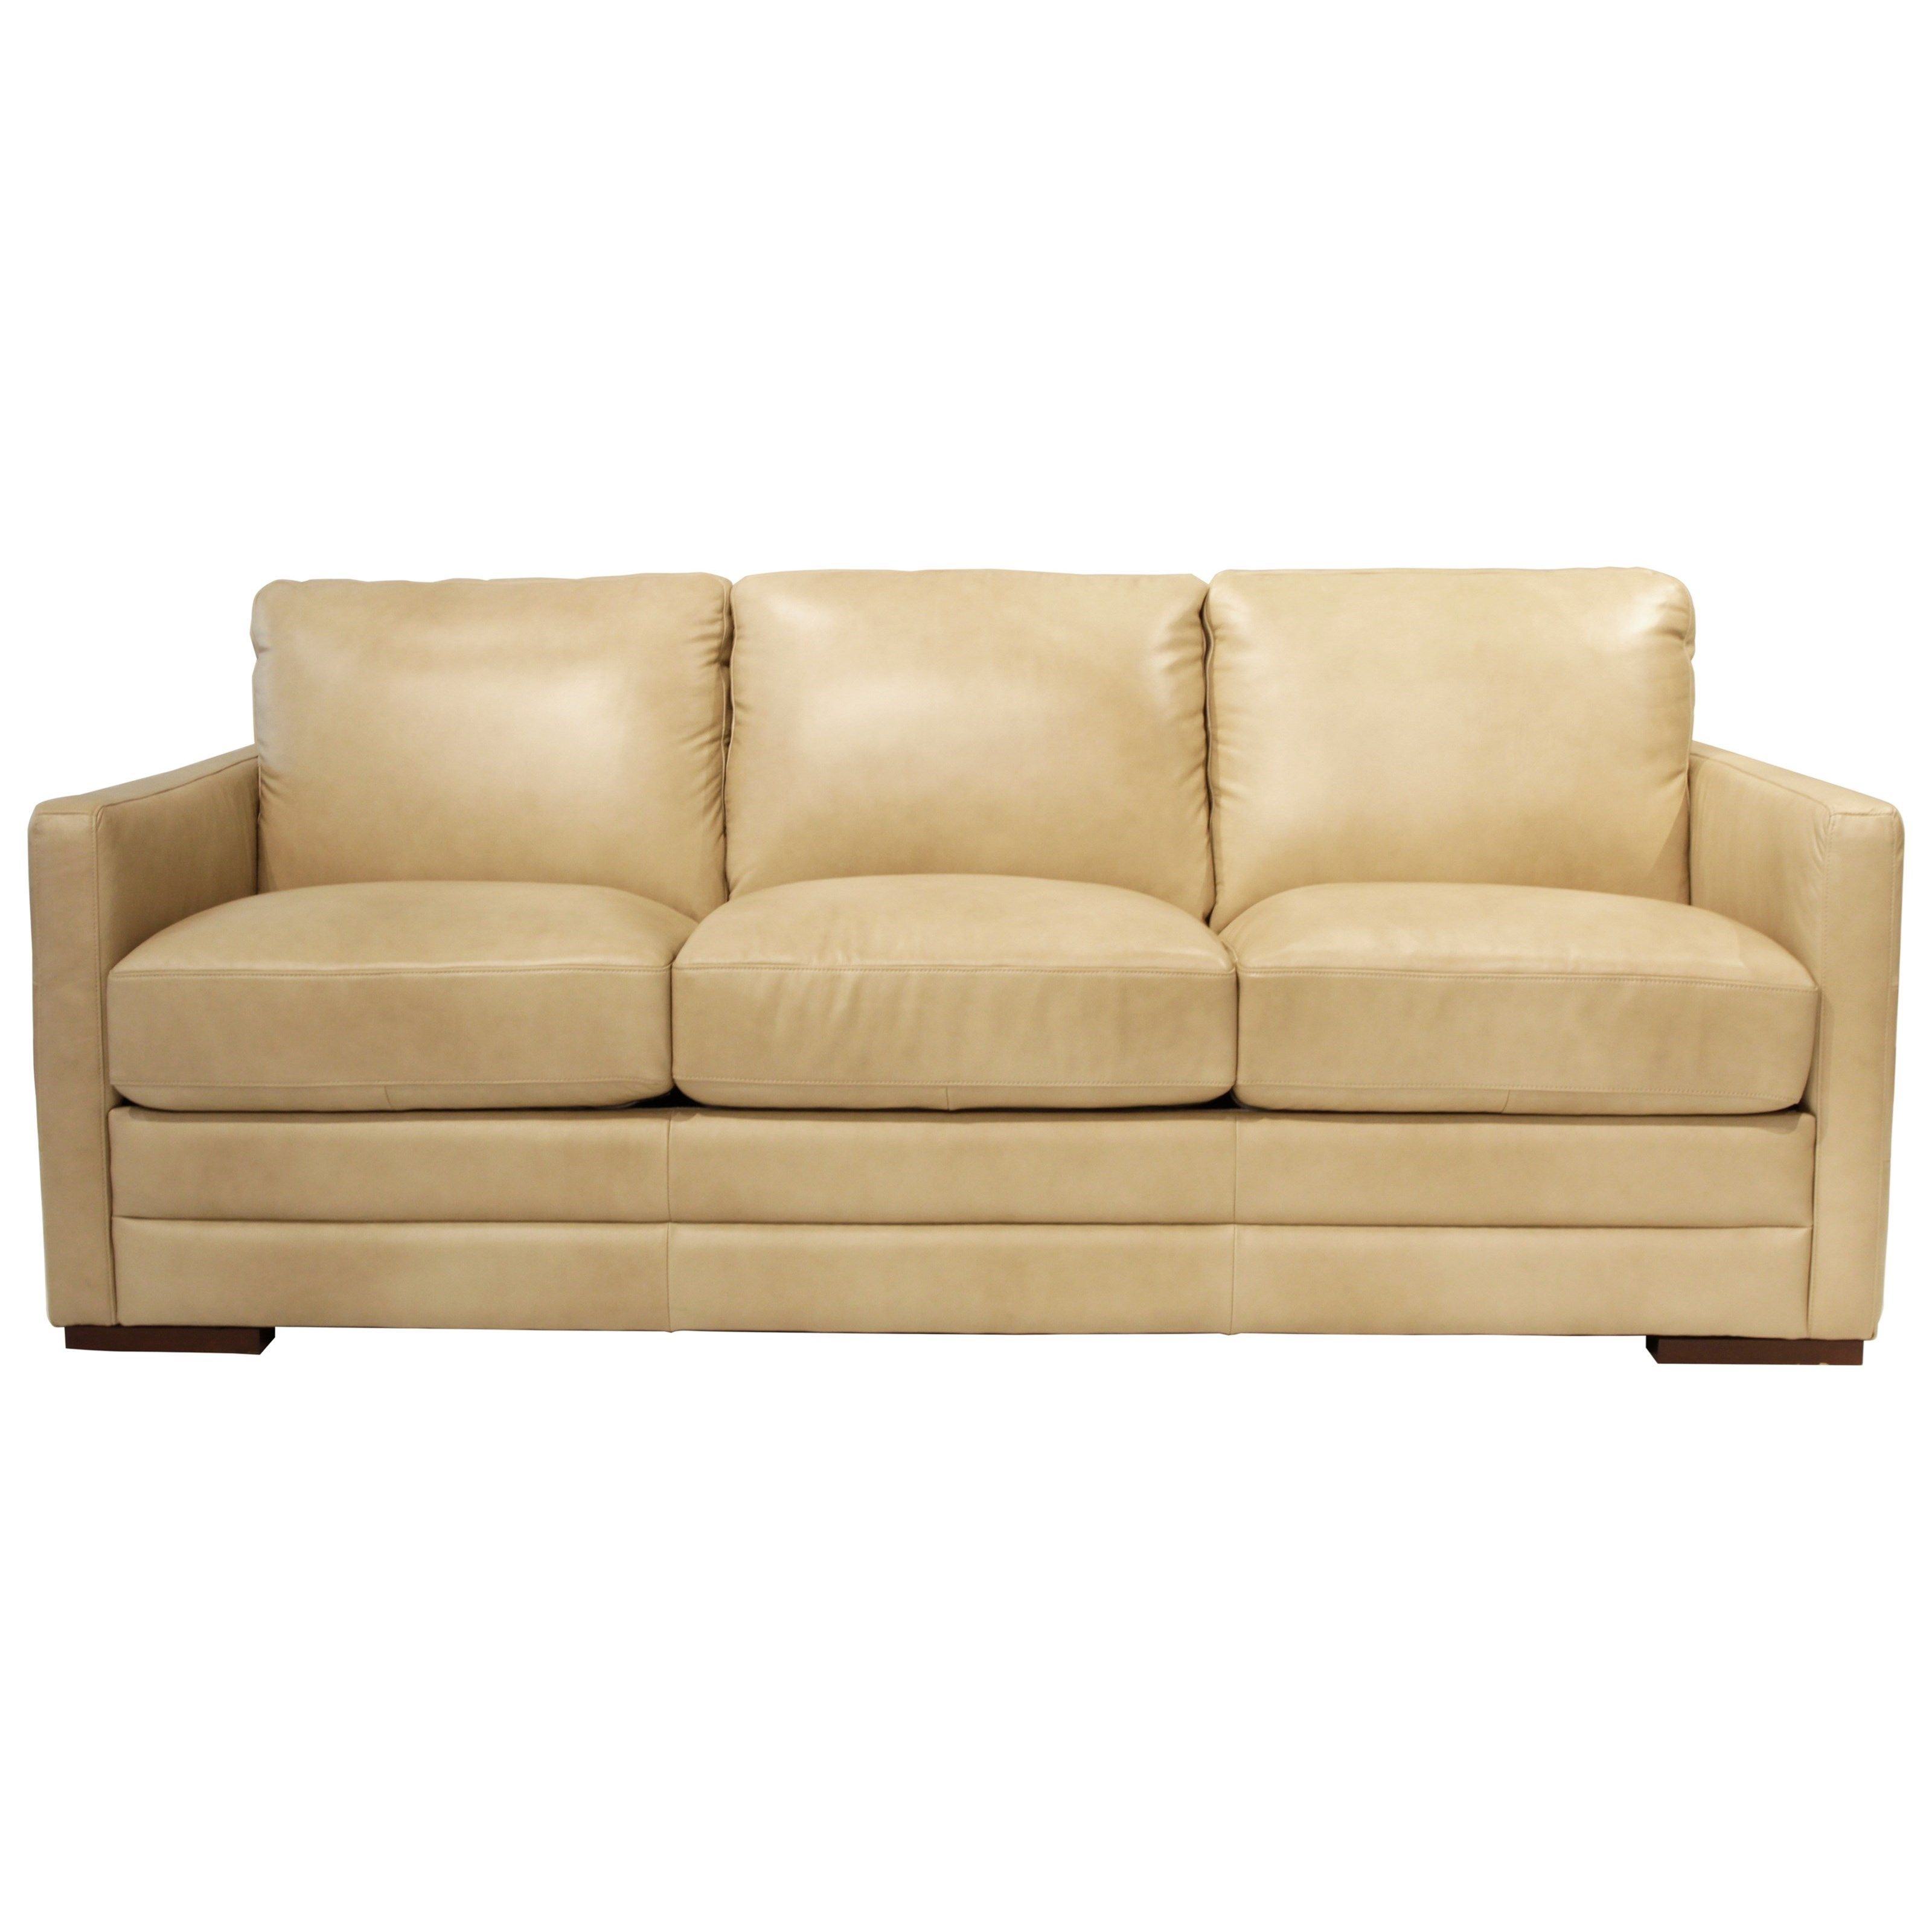 - Monica Queen Sofabed By Futura Leather (With Images) Sofa Bed